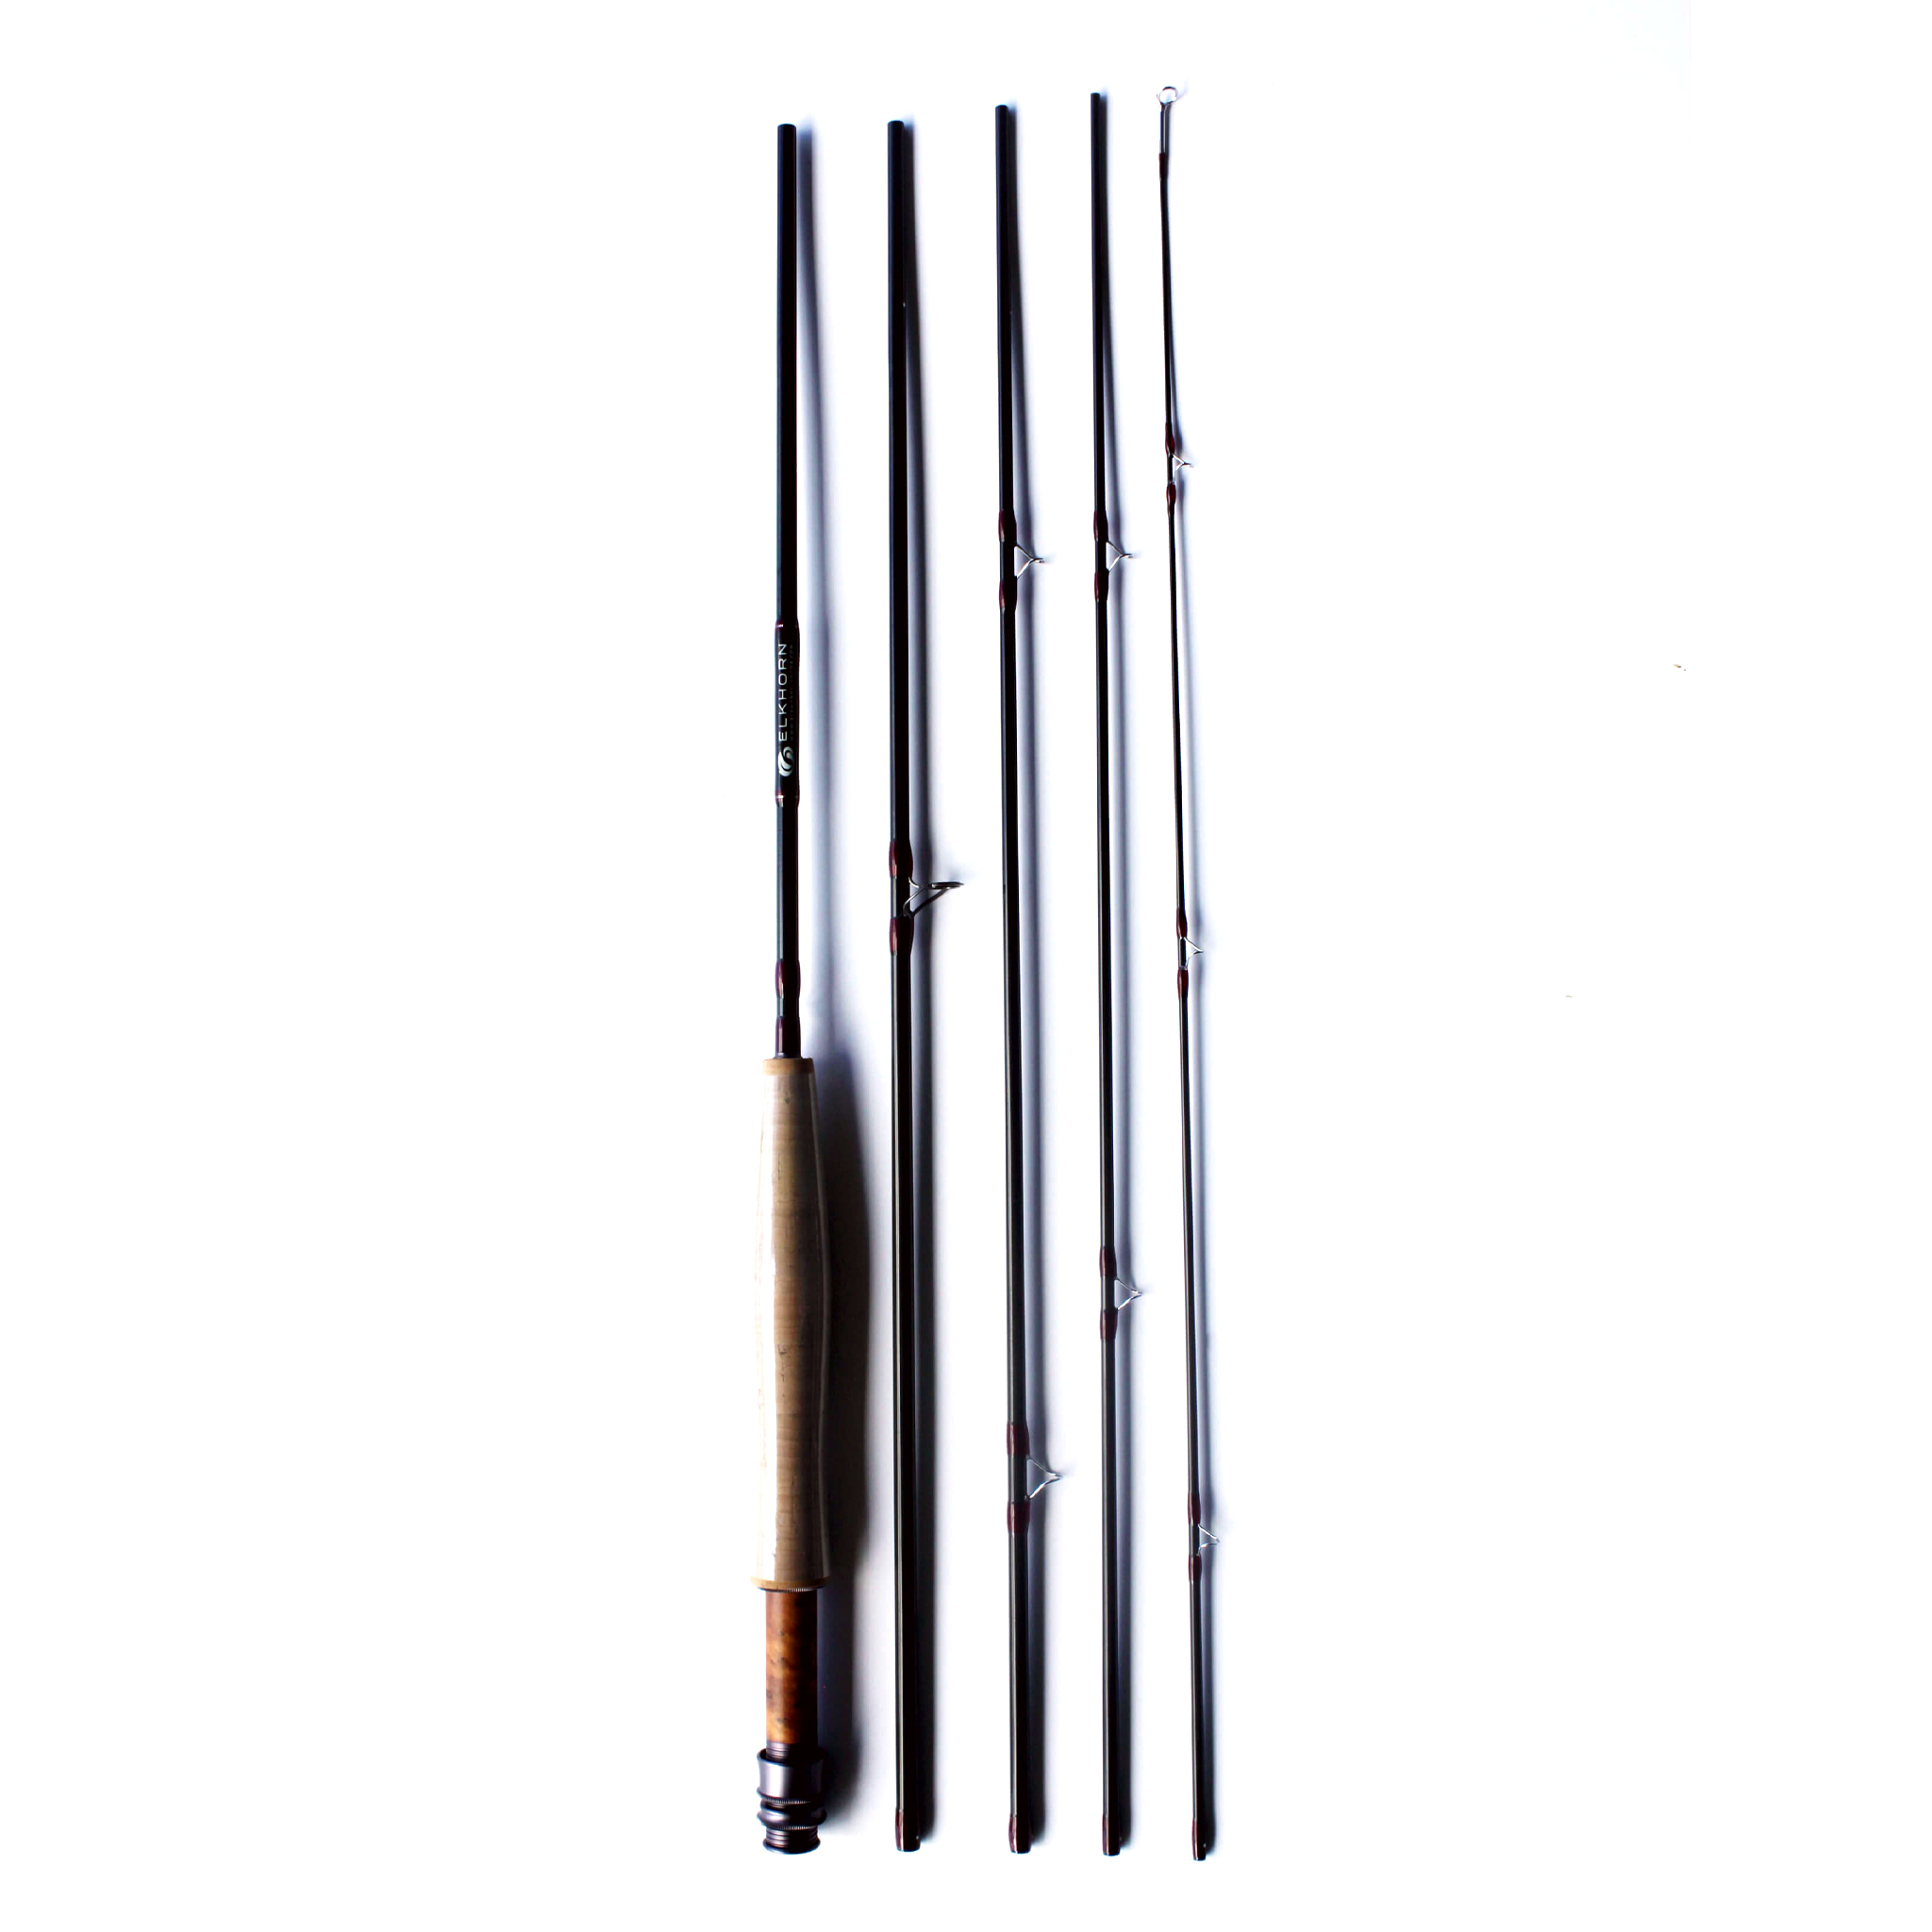 ELKHORN'S 5X SERIES FLY RODS-black